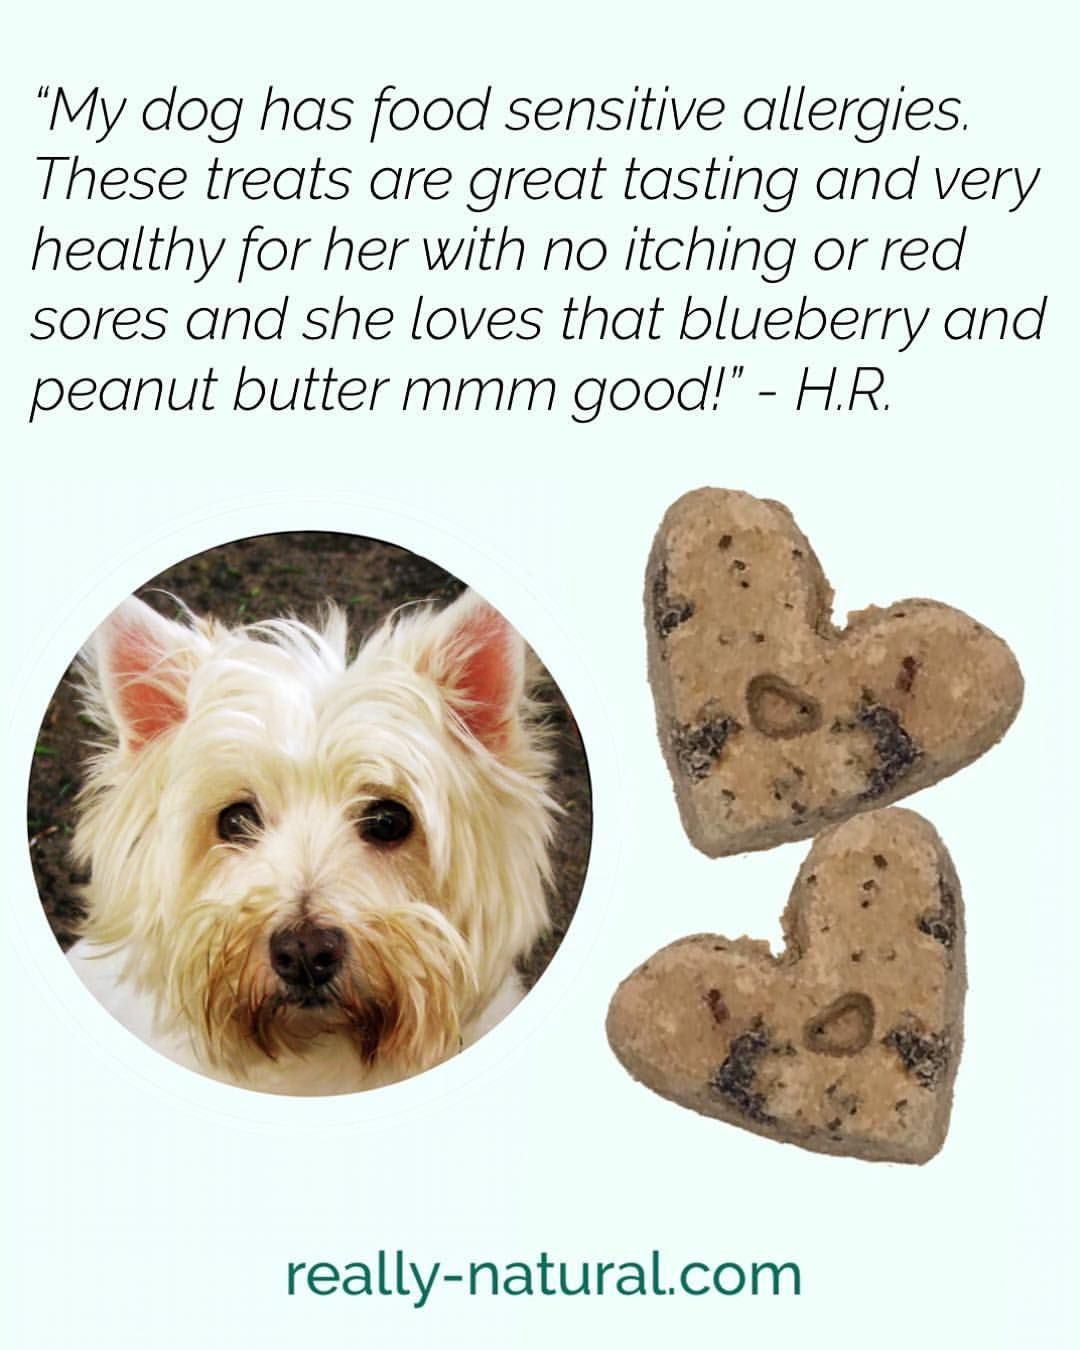 Yummy Treats Adored By Dogs With Natural Ingredients Rich In Omega 3 Fatty Acids For Healthy Skin And Coat Plus Pet Par Natural Pet Pet Parent Healthy Pets